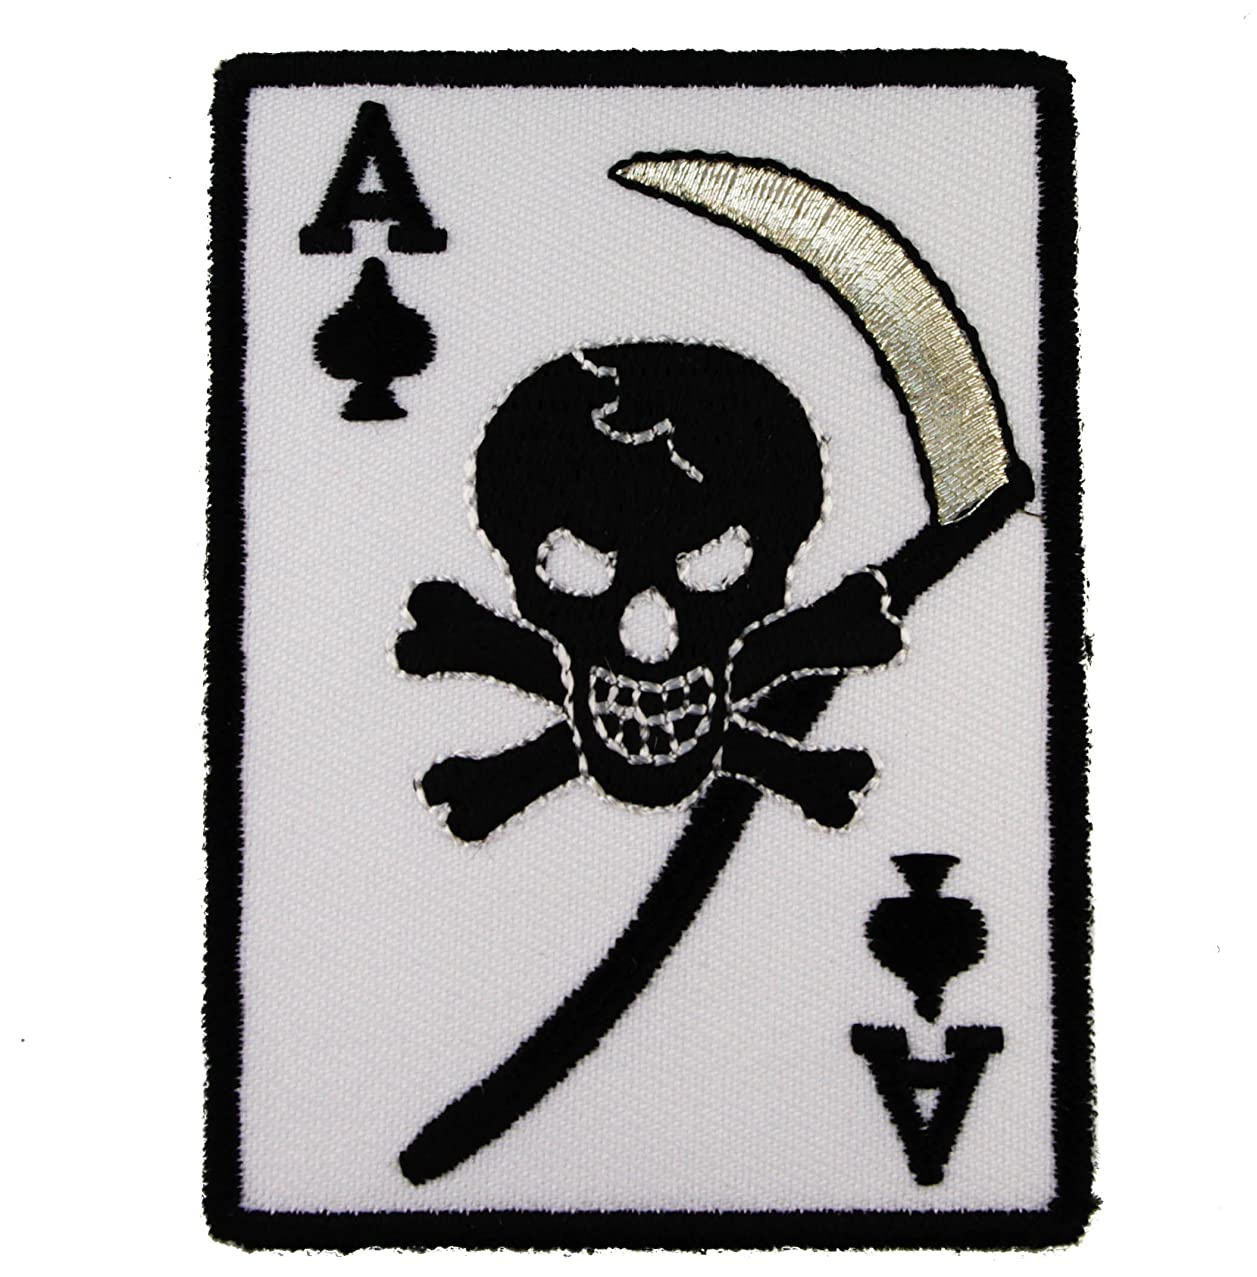 Ace of Spades Scythe Grim Reaper Biker Iron on Embroidered Patch AKPT179